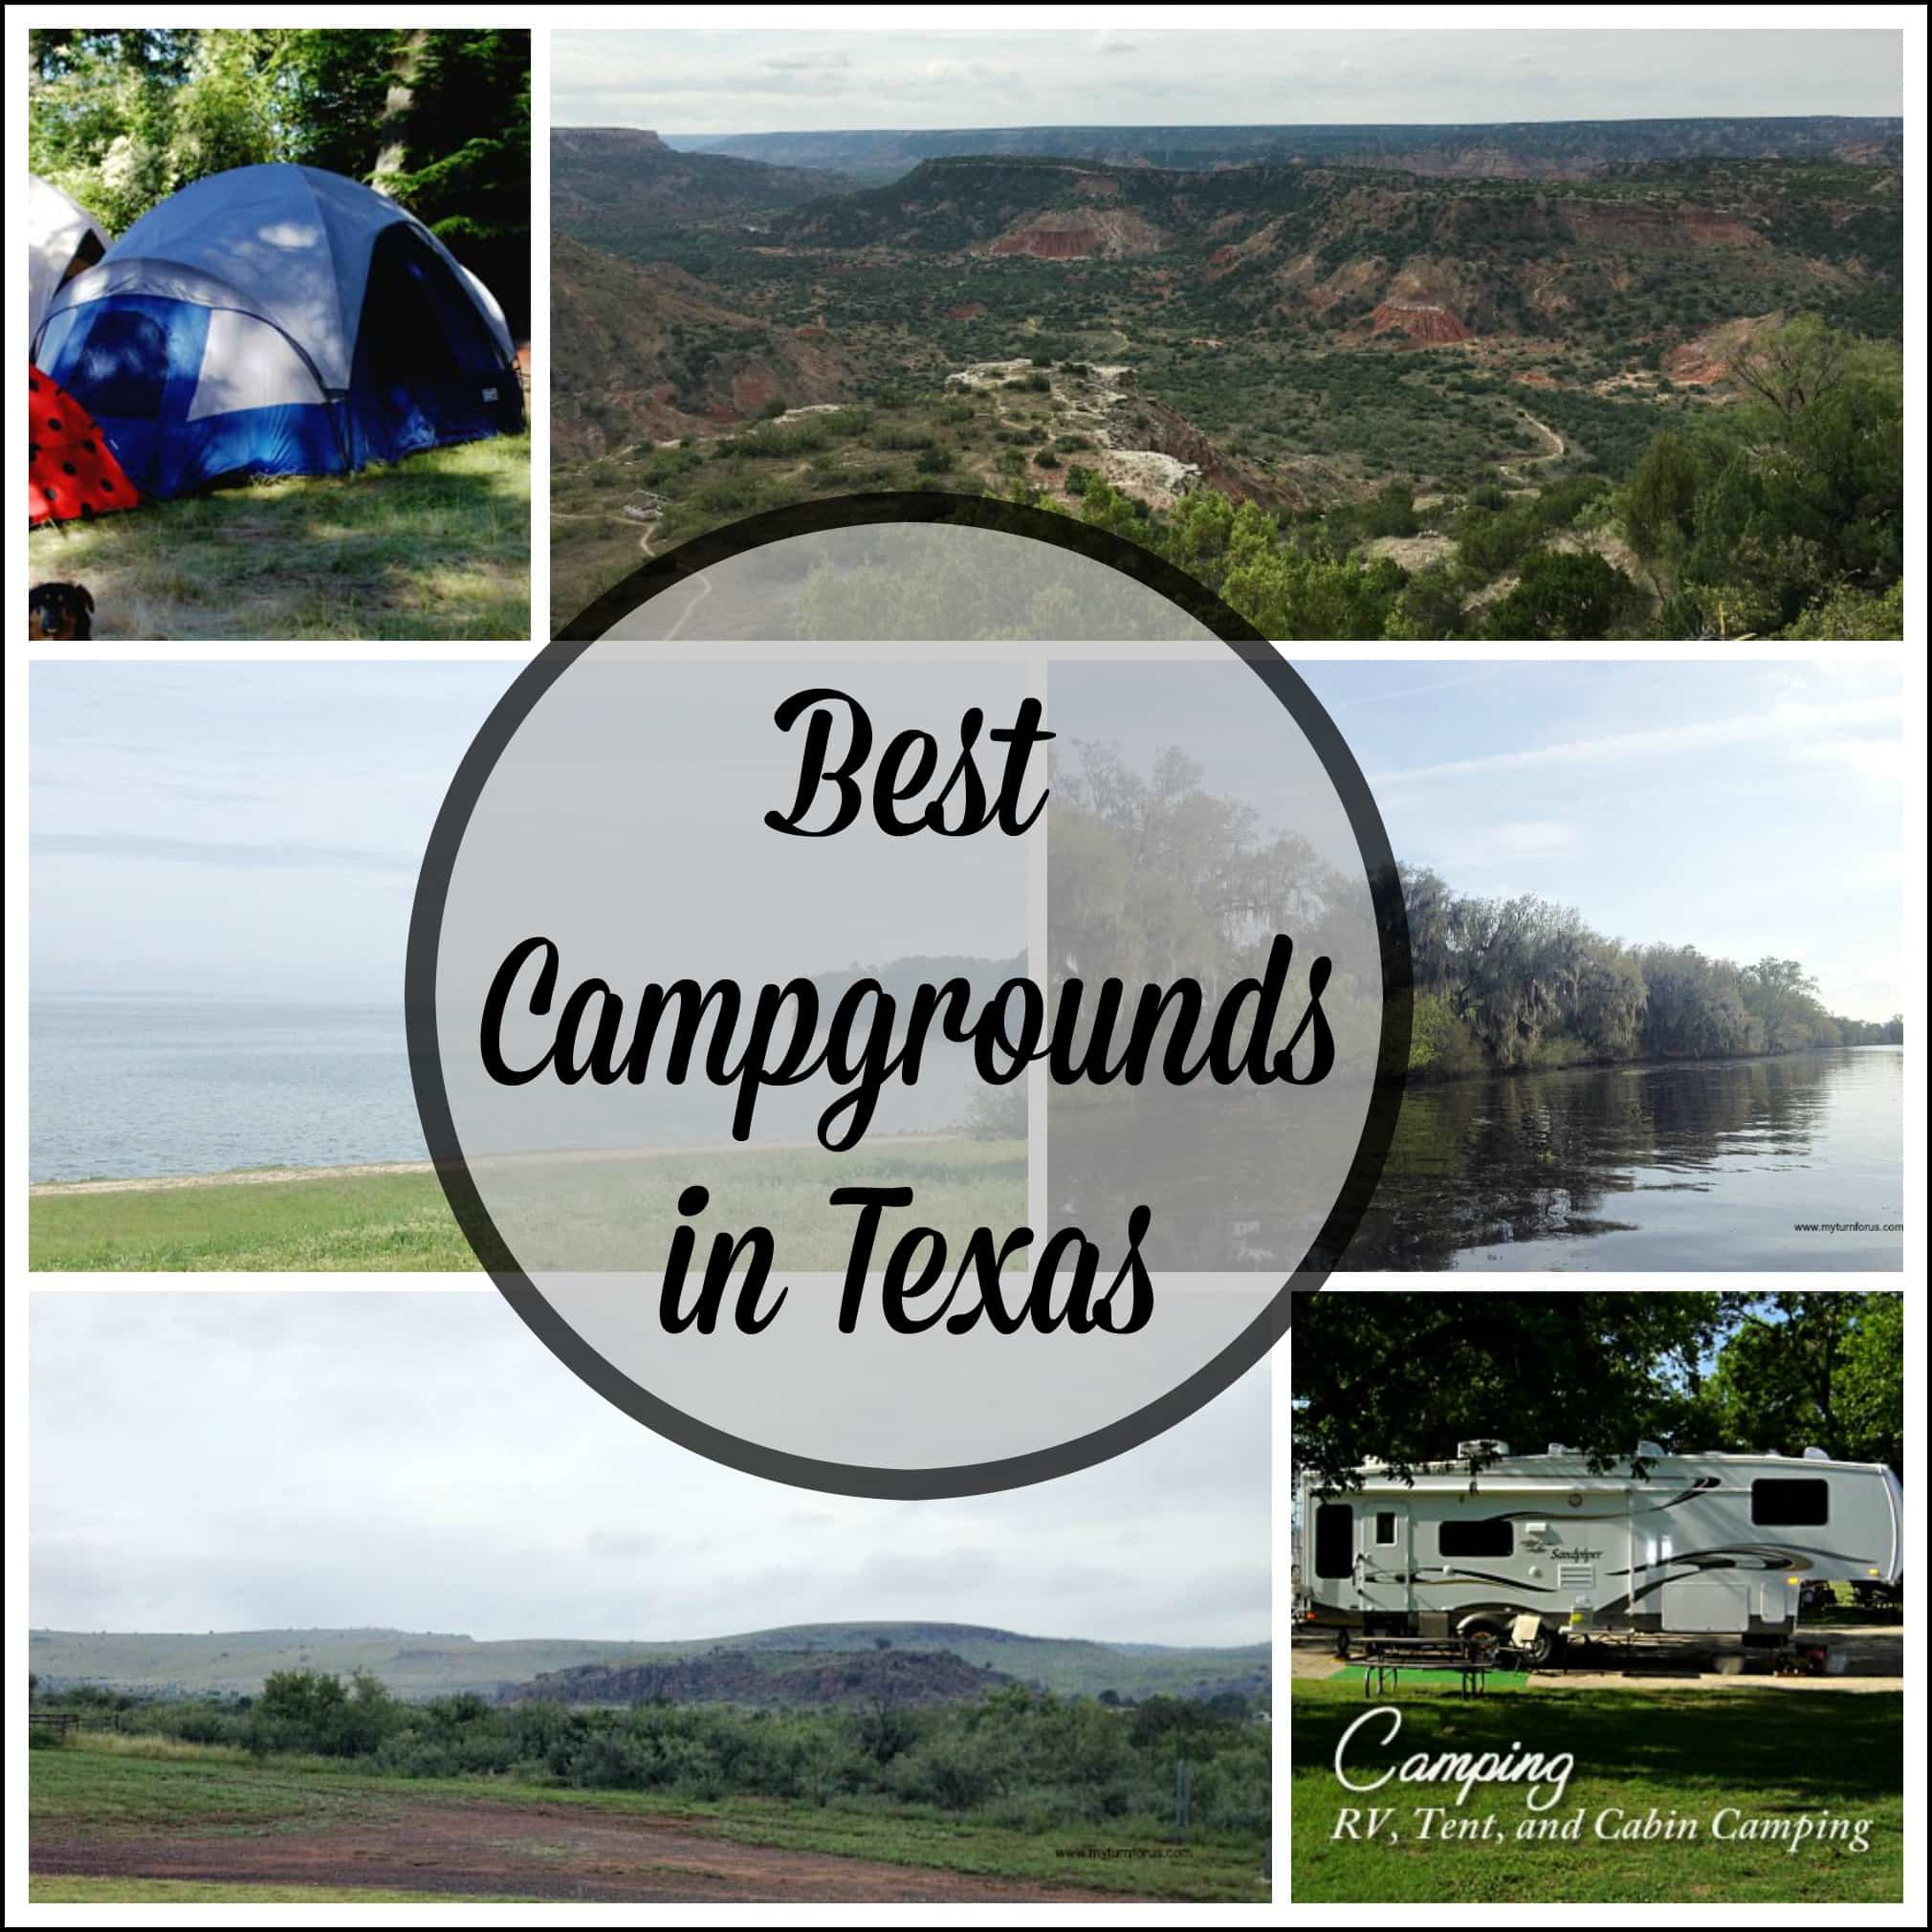 Best Campgrounds in Texas